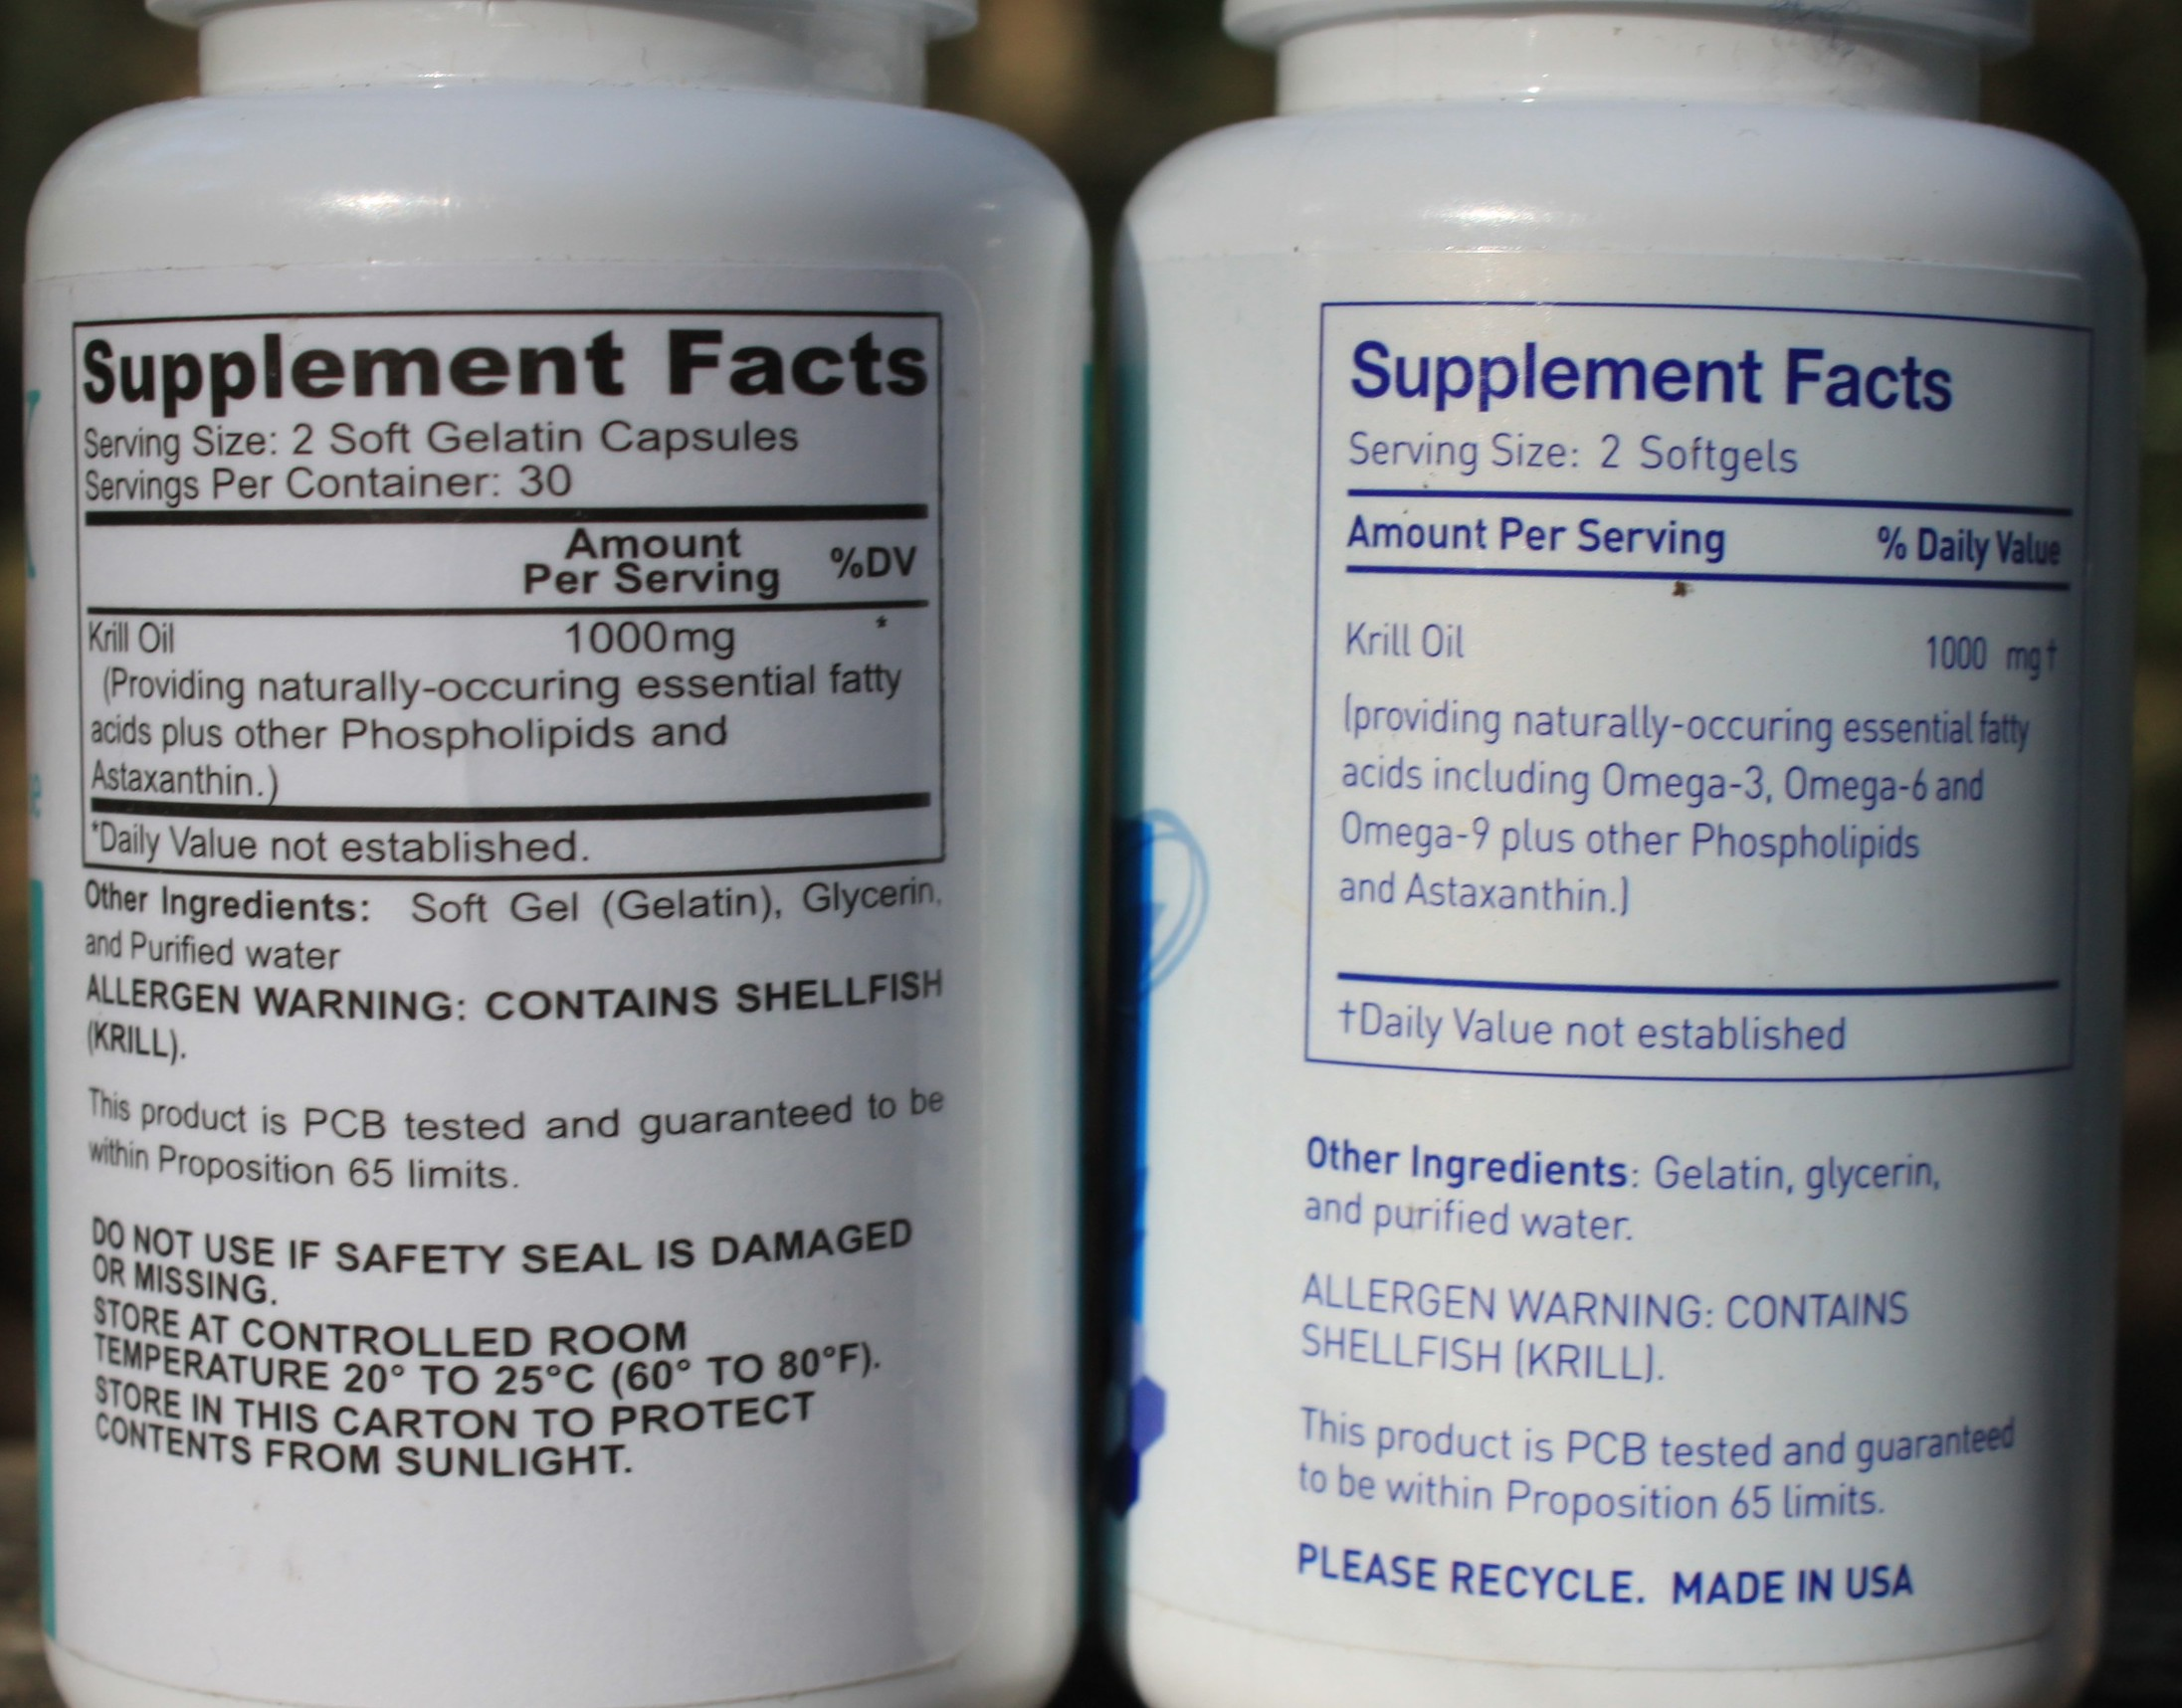 fda dietary supplement labeling guide pdf